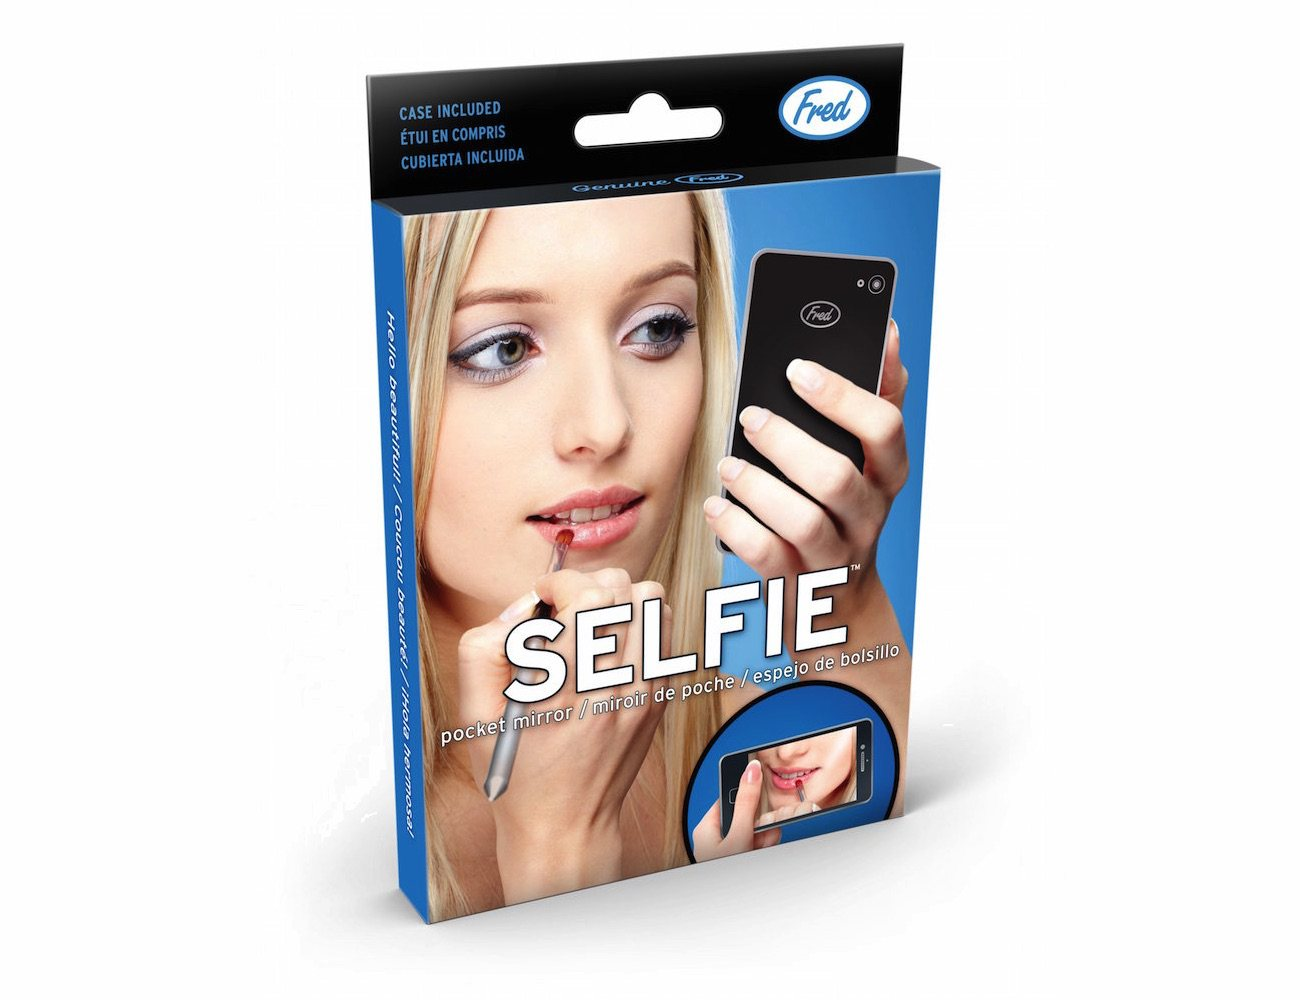 Selfie Pocket Mirror – Resembling a Smartphone